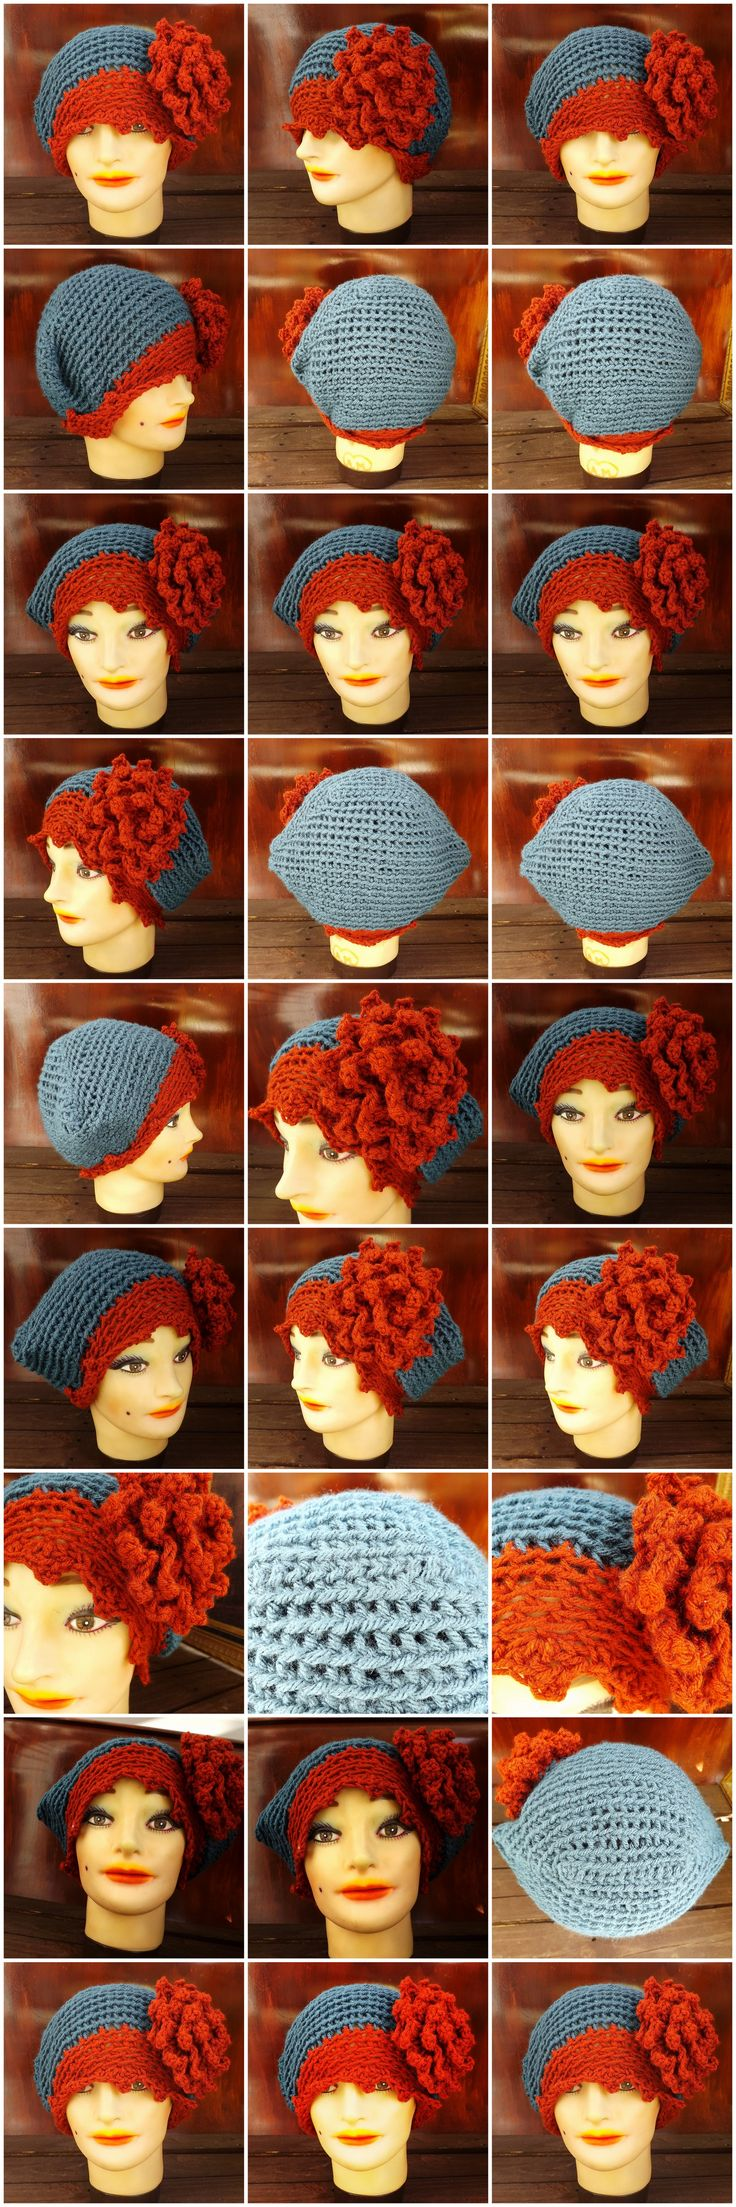 EVE Crochet Cloche Hat in Orange and Blue with Flower $40.00